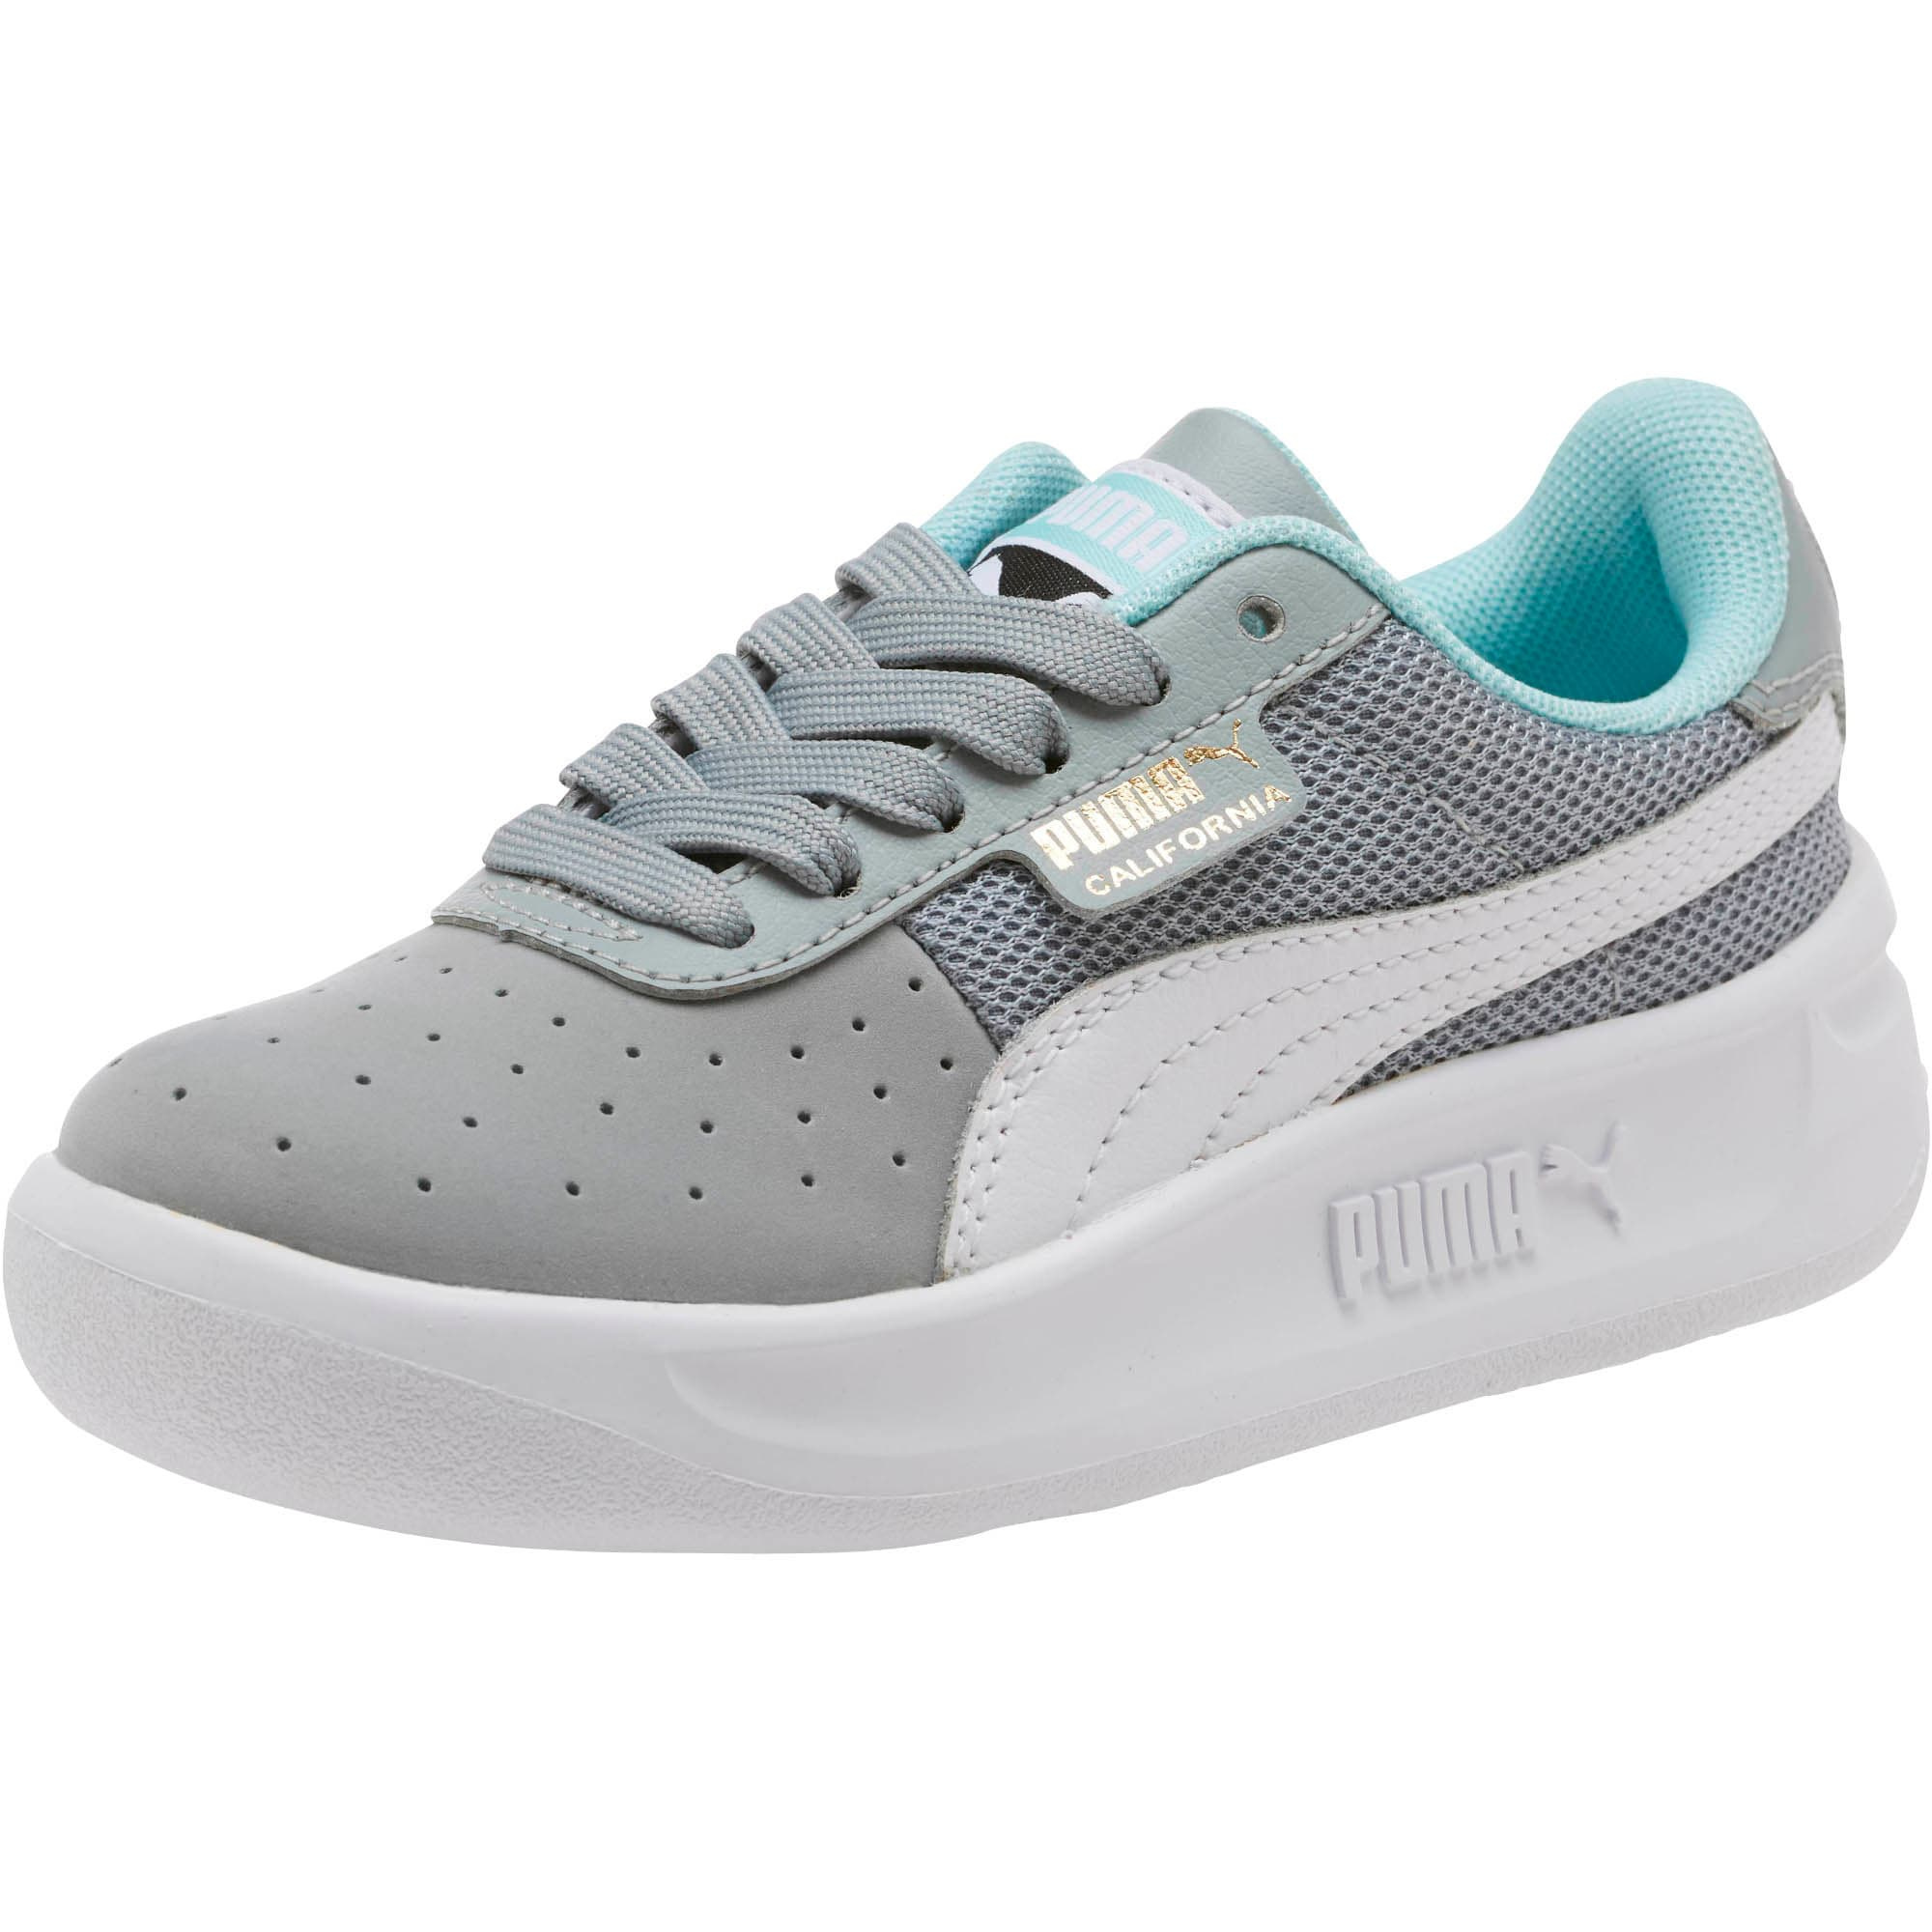 Thumbnail 1 of California Casual Little Kids' Shoes, Quarry-Puma White- Gold, medium